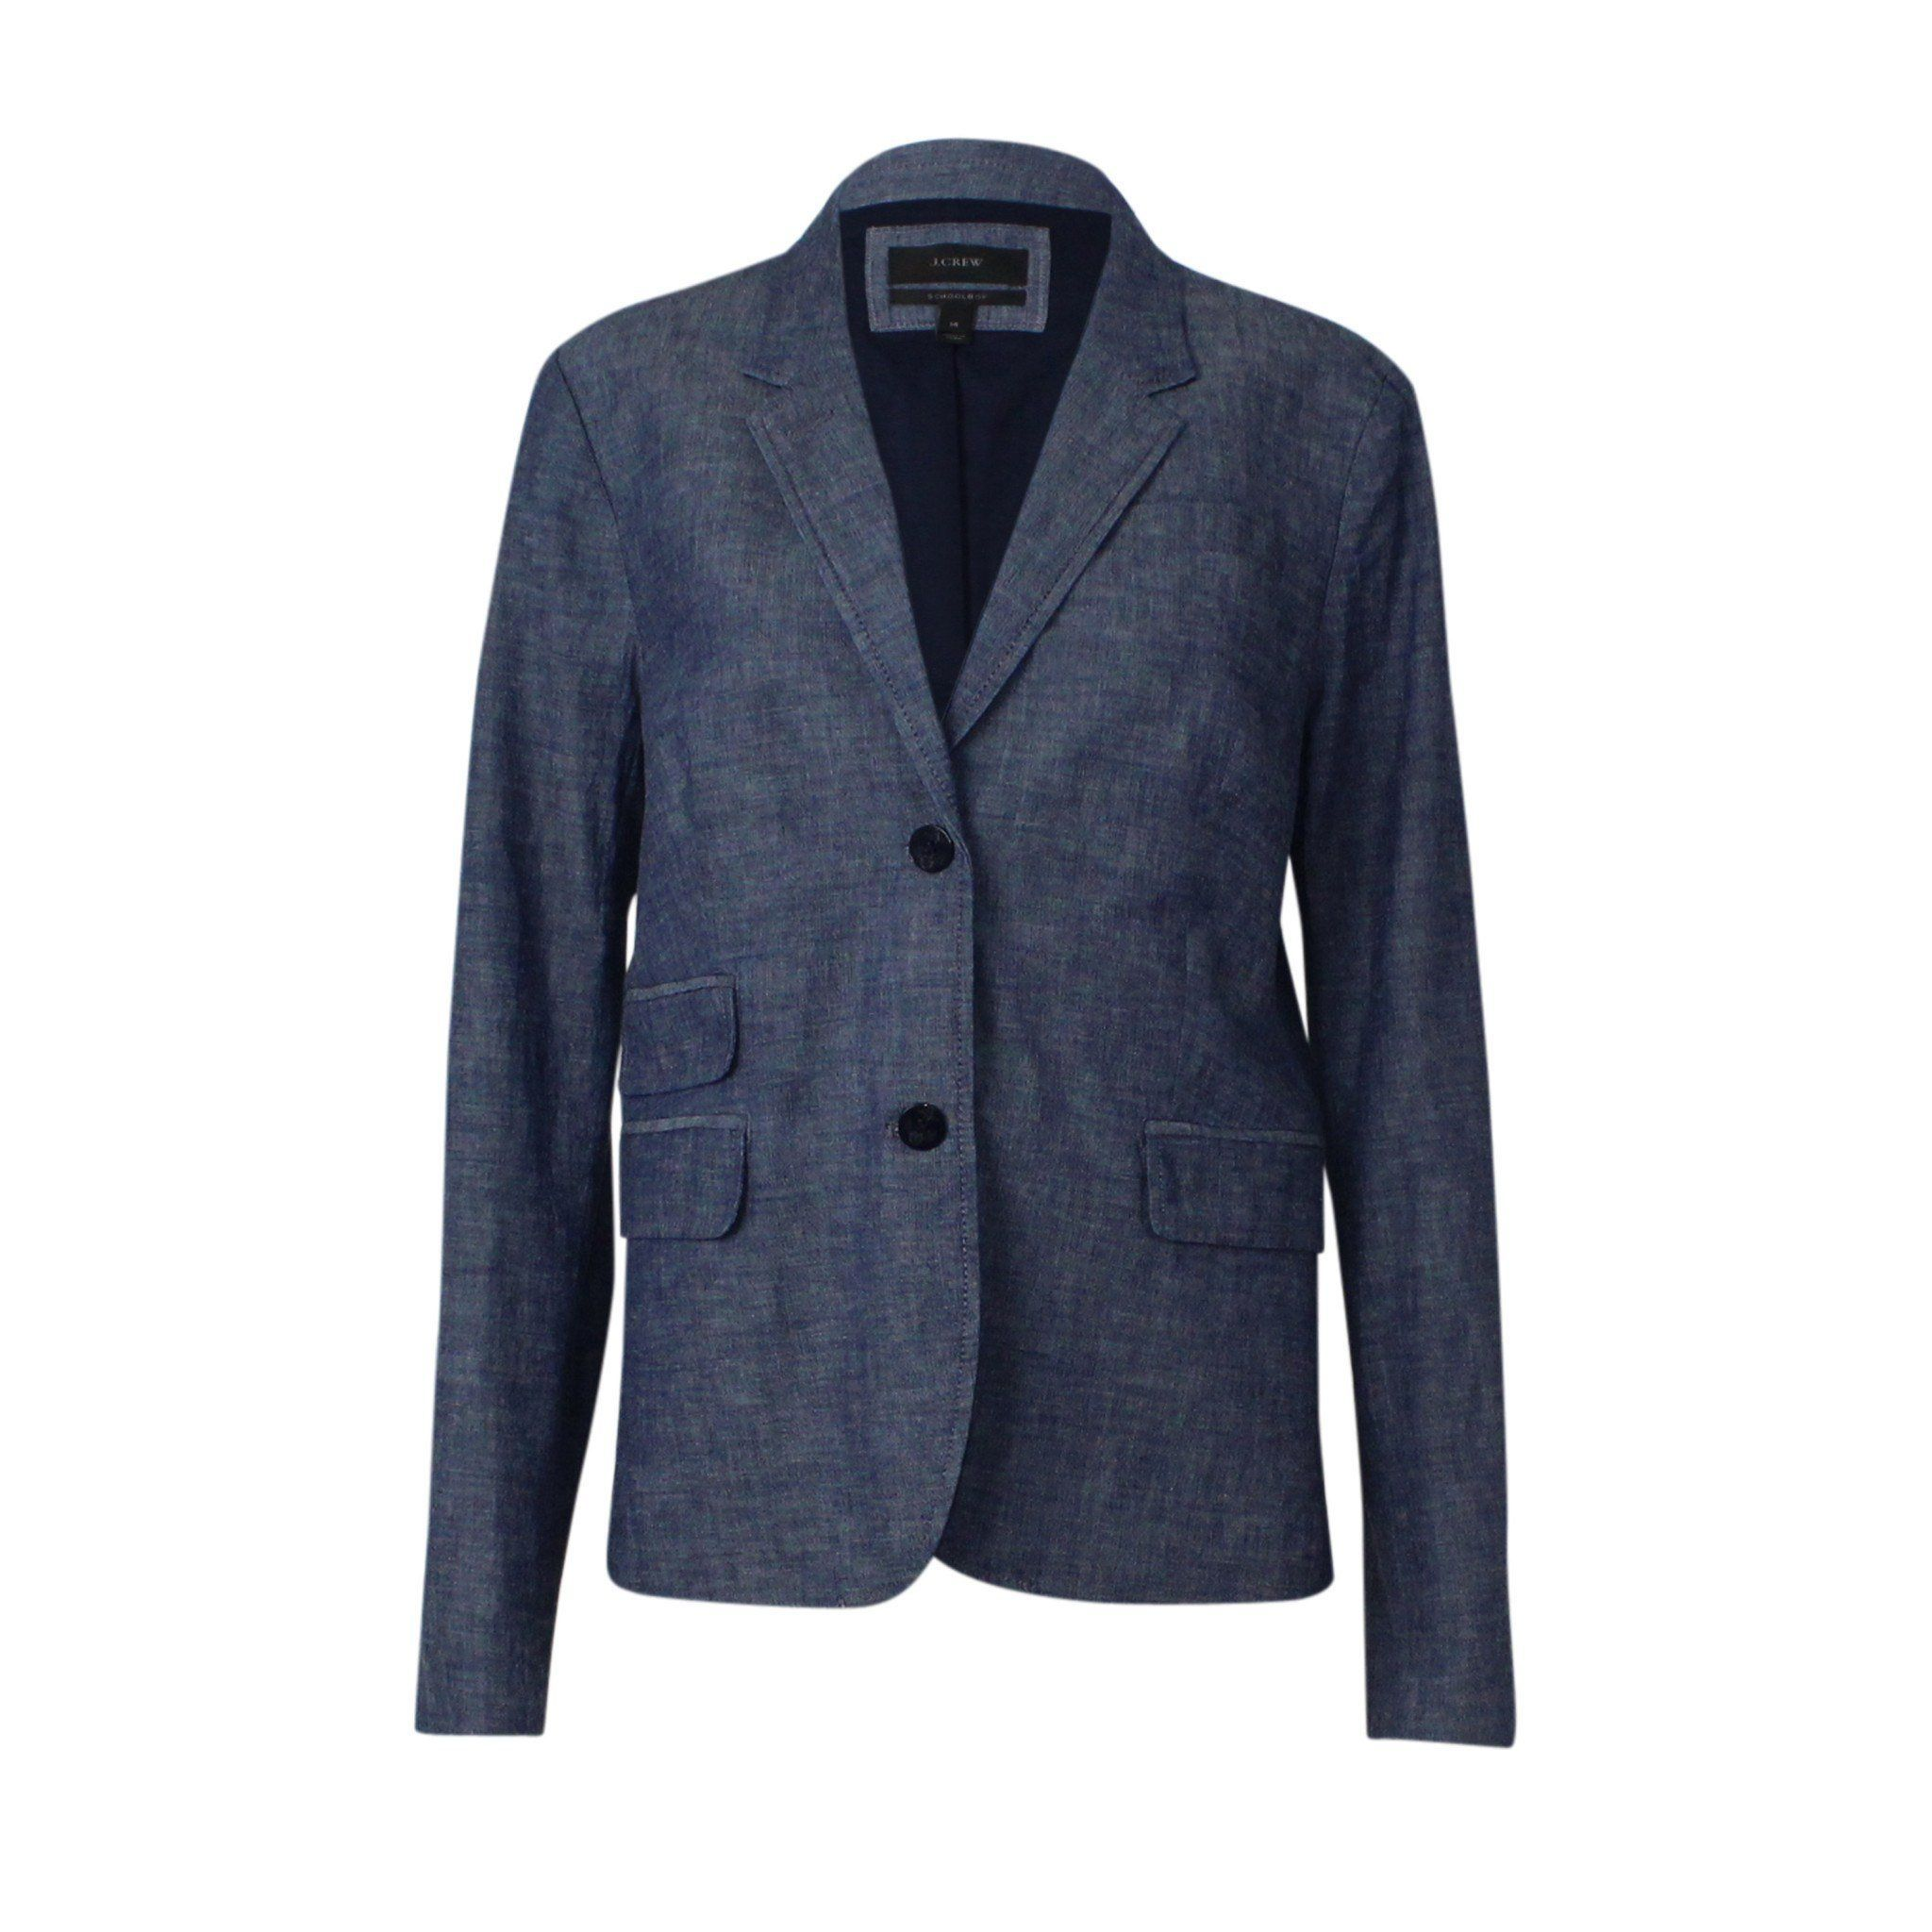 Schoolboy Blazer in Chambray for only $110.00   #autumncolors #fall2017 #sweaterweather